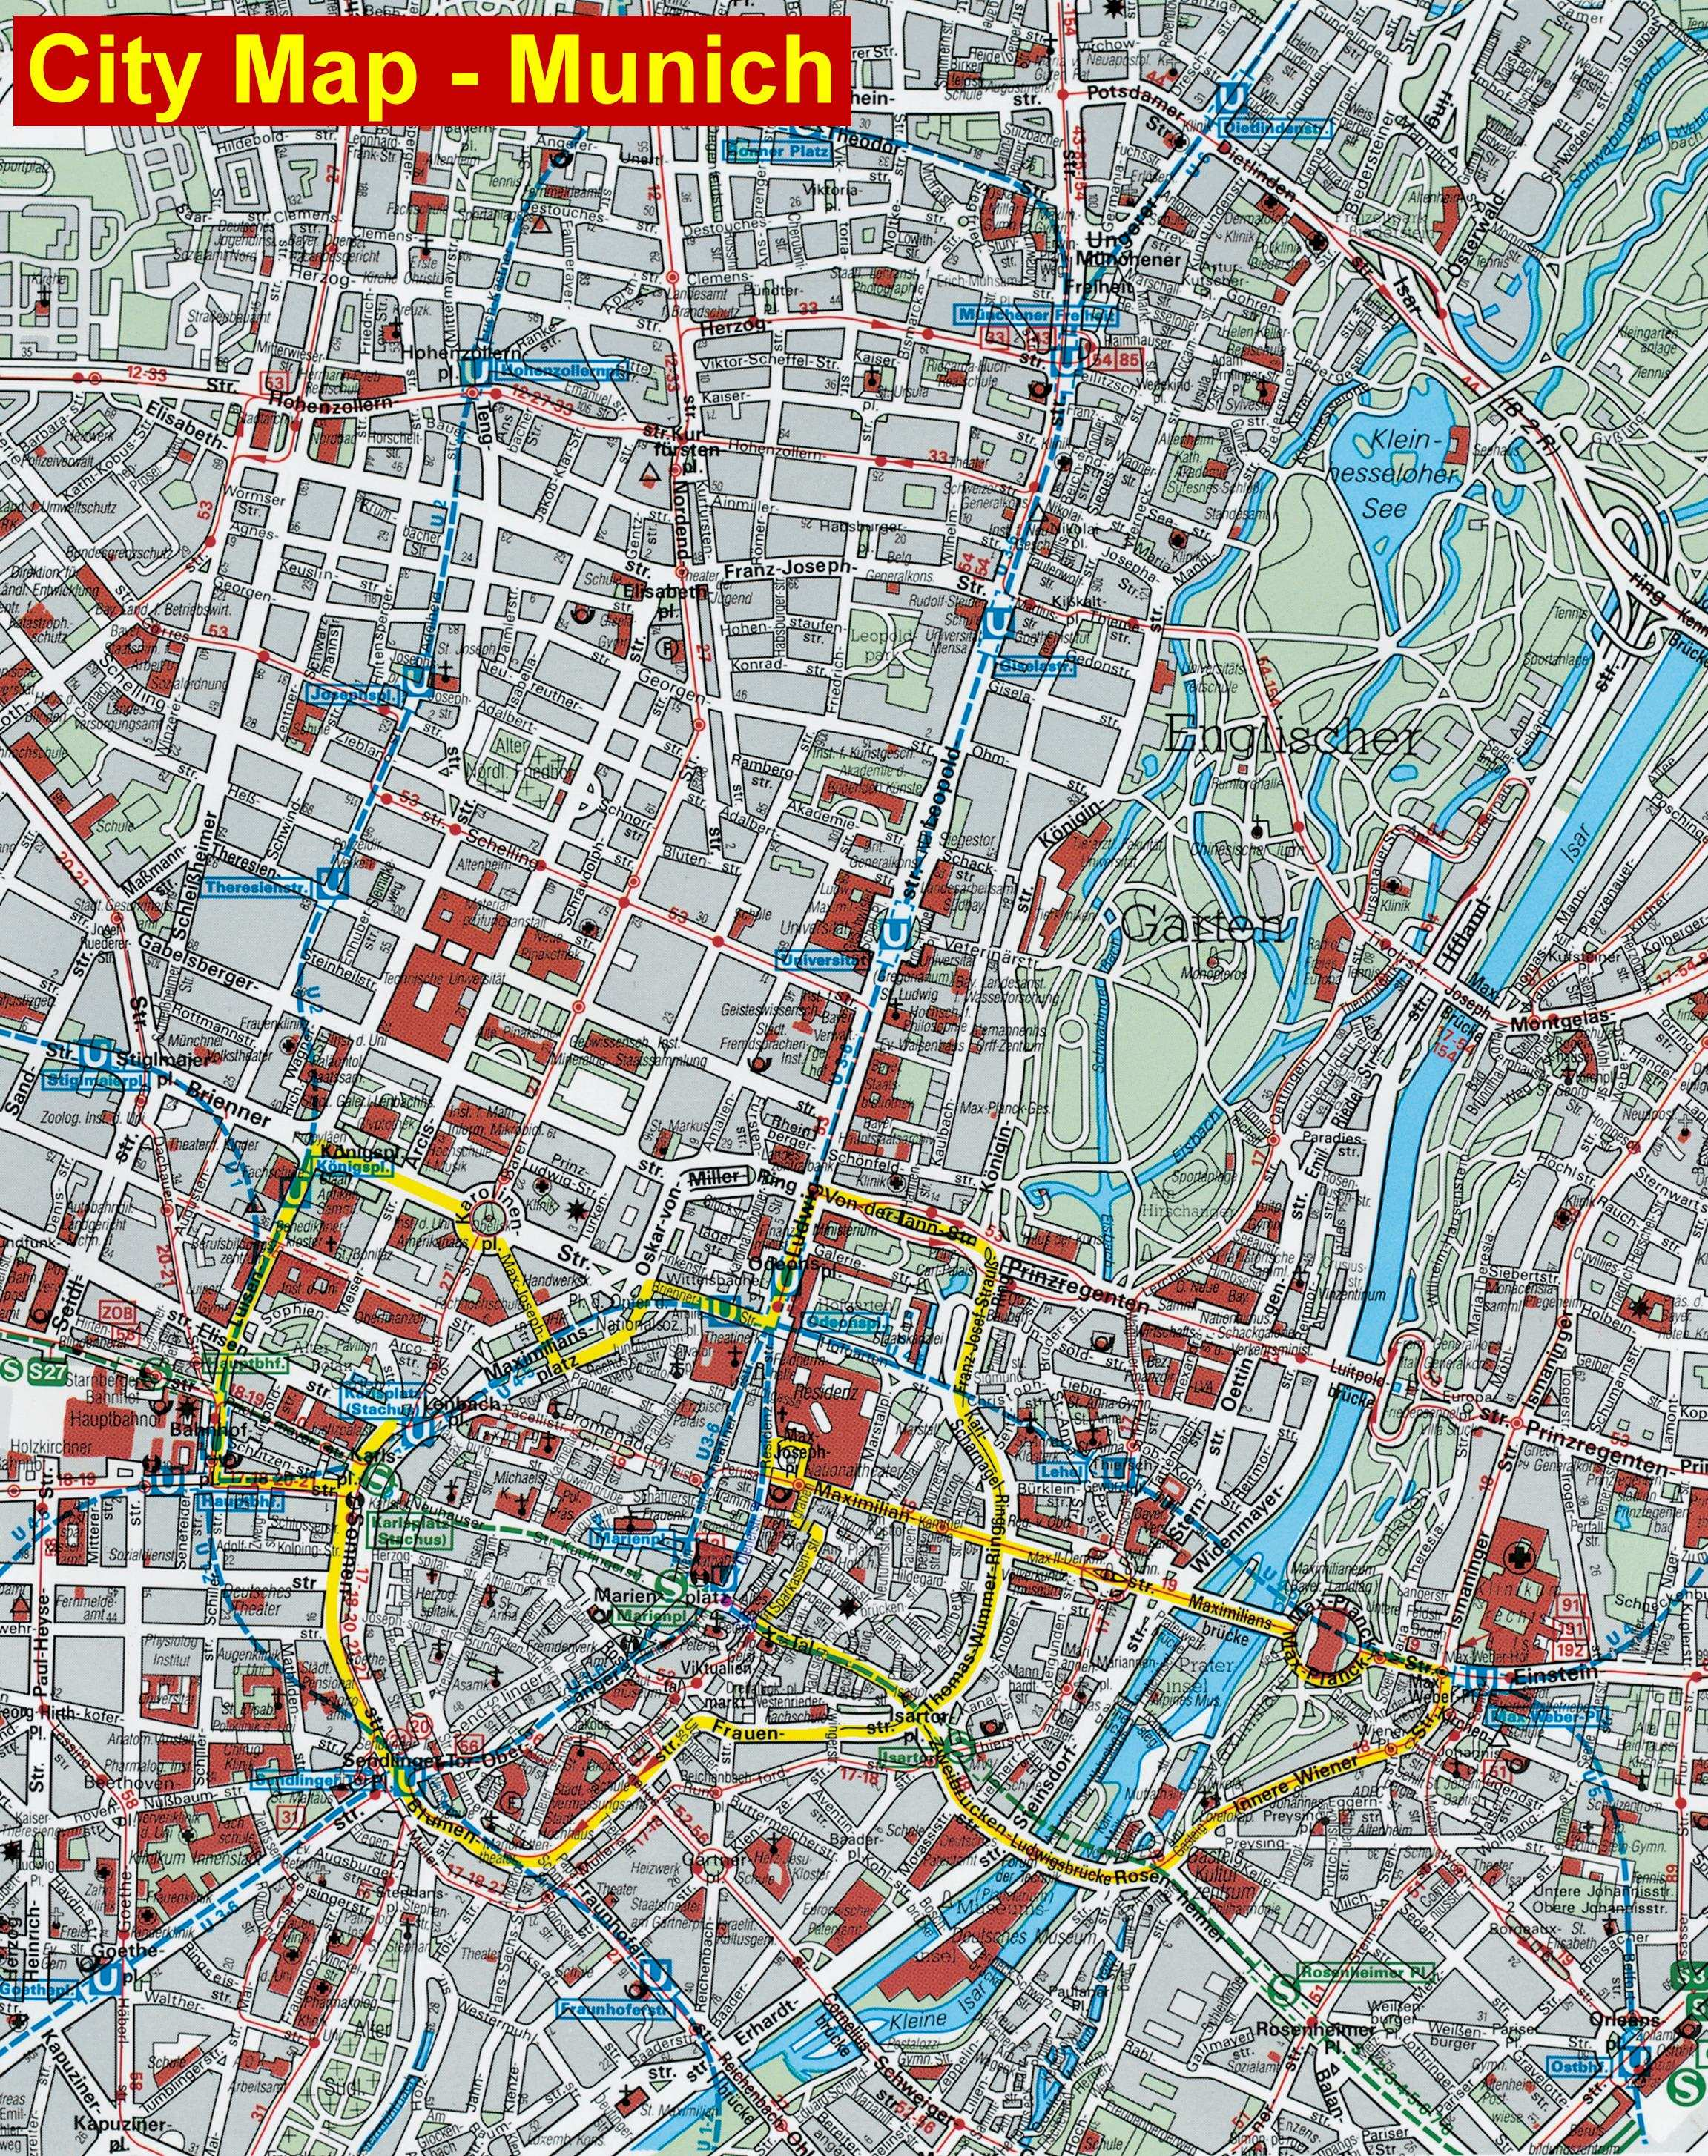 Munich Map Detailed City and Metro Maps of Munich for Download – Munich Tourist Map